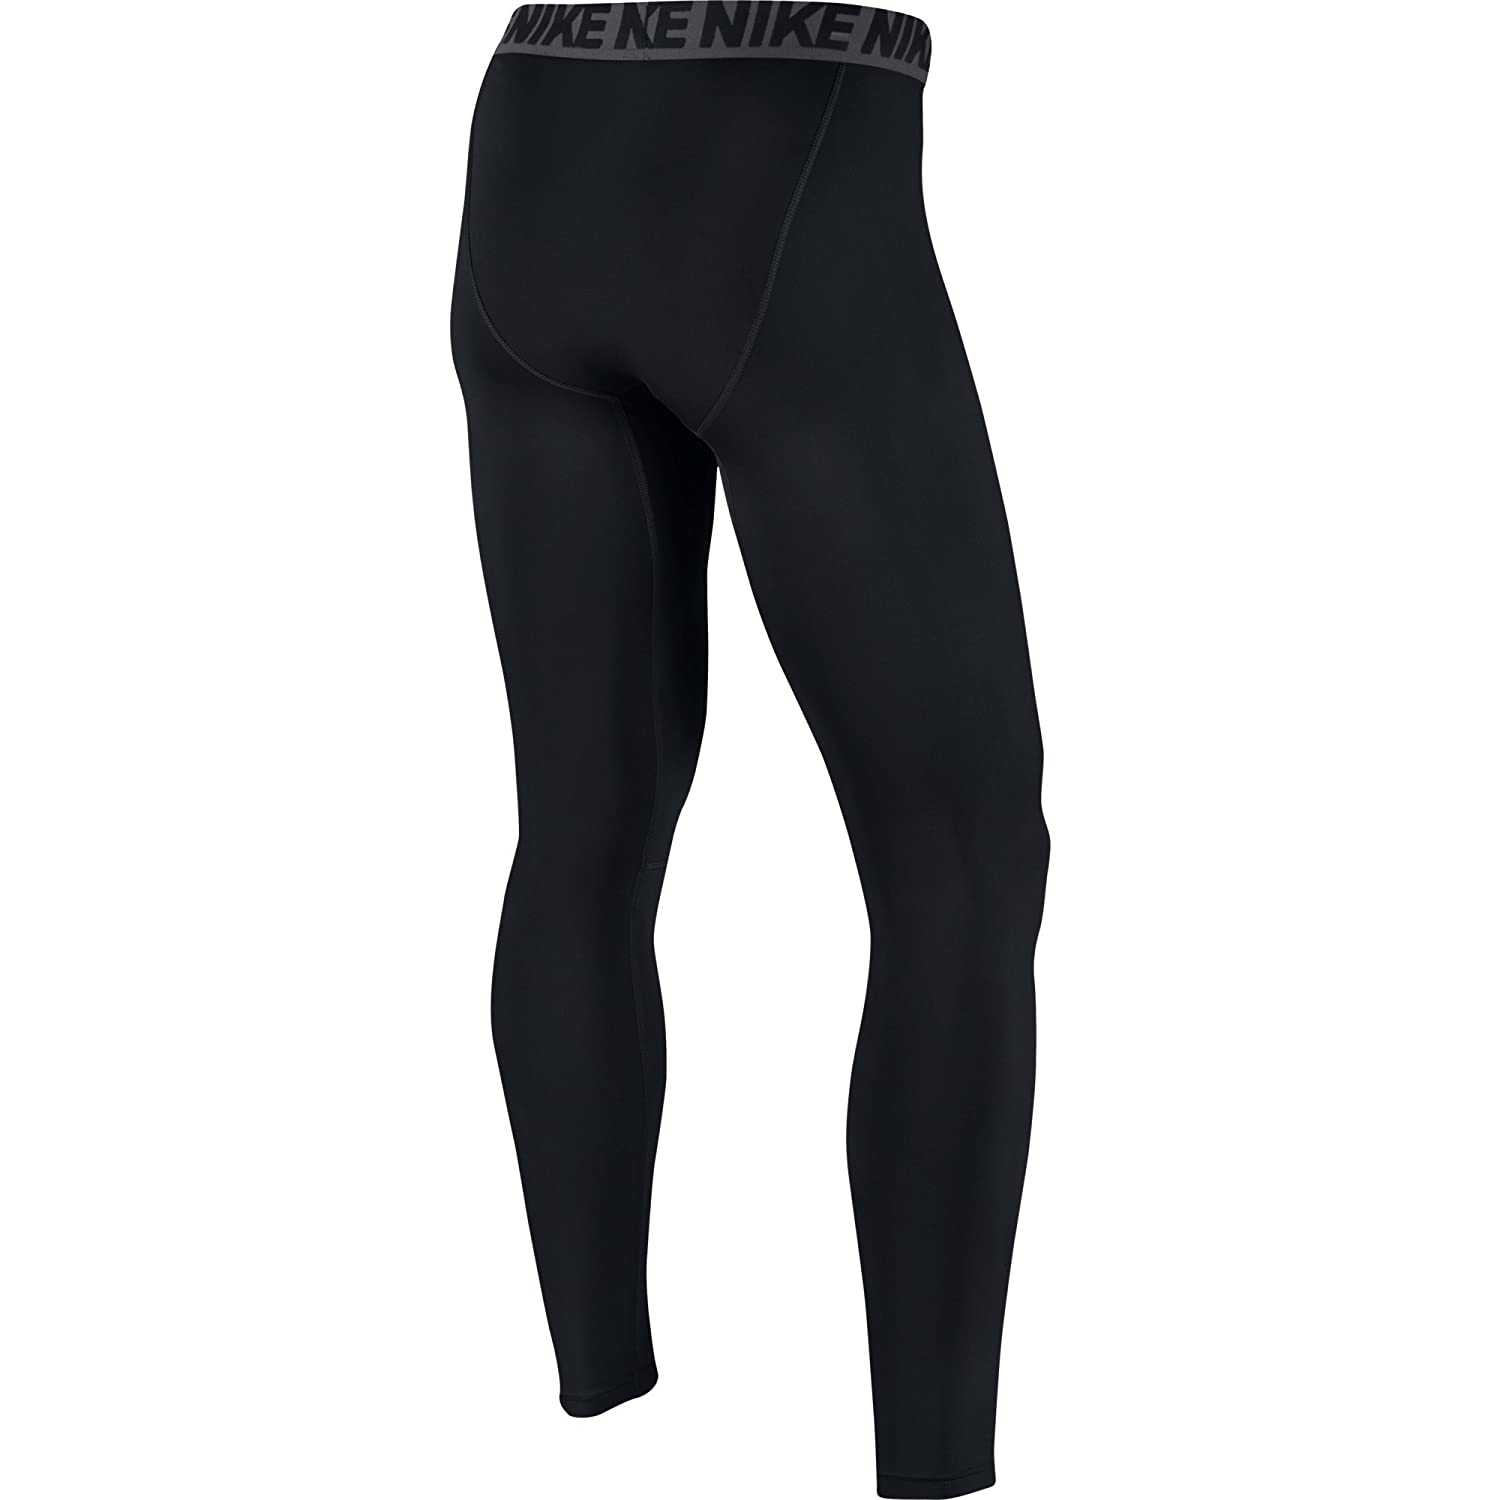 a248fa7ff8653 Amazon.com : NIKE Men's Base Layer Training Tights : Clothing